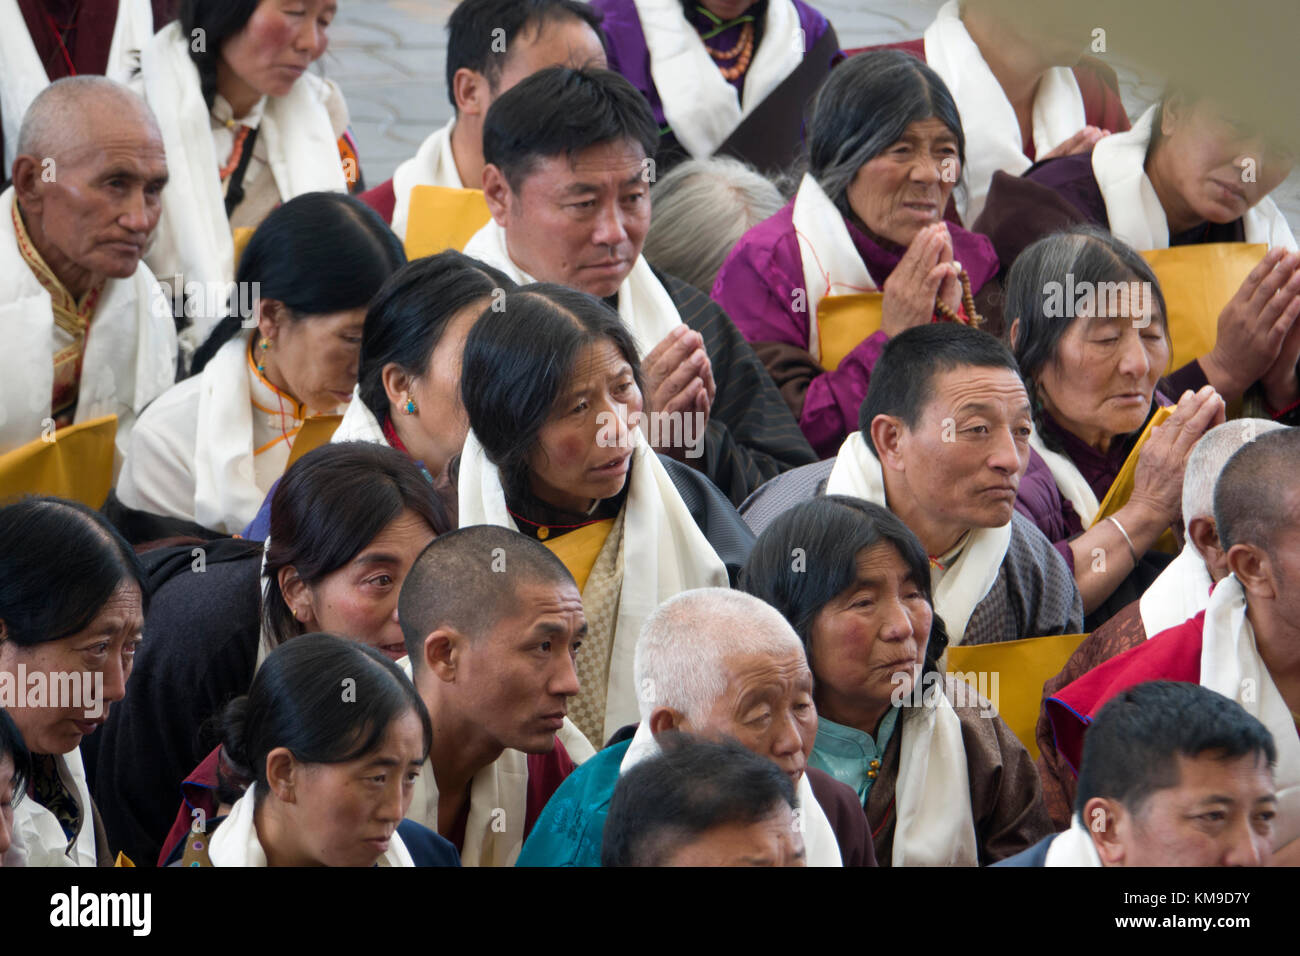 Buddhist disciples listening to His Holiness the 14th Dalai Lama at Namgyal Monastery in McLeod Ganj, India - Stock Image